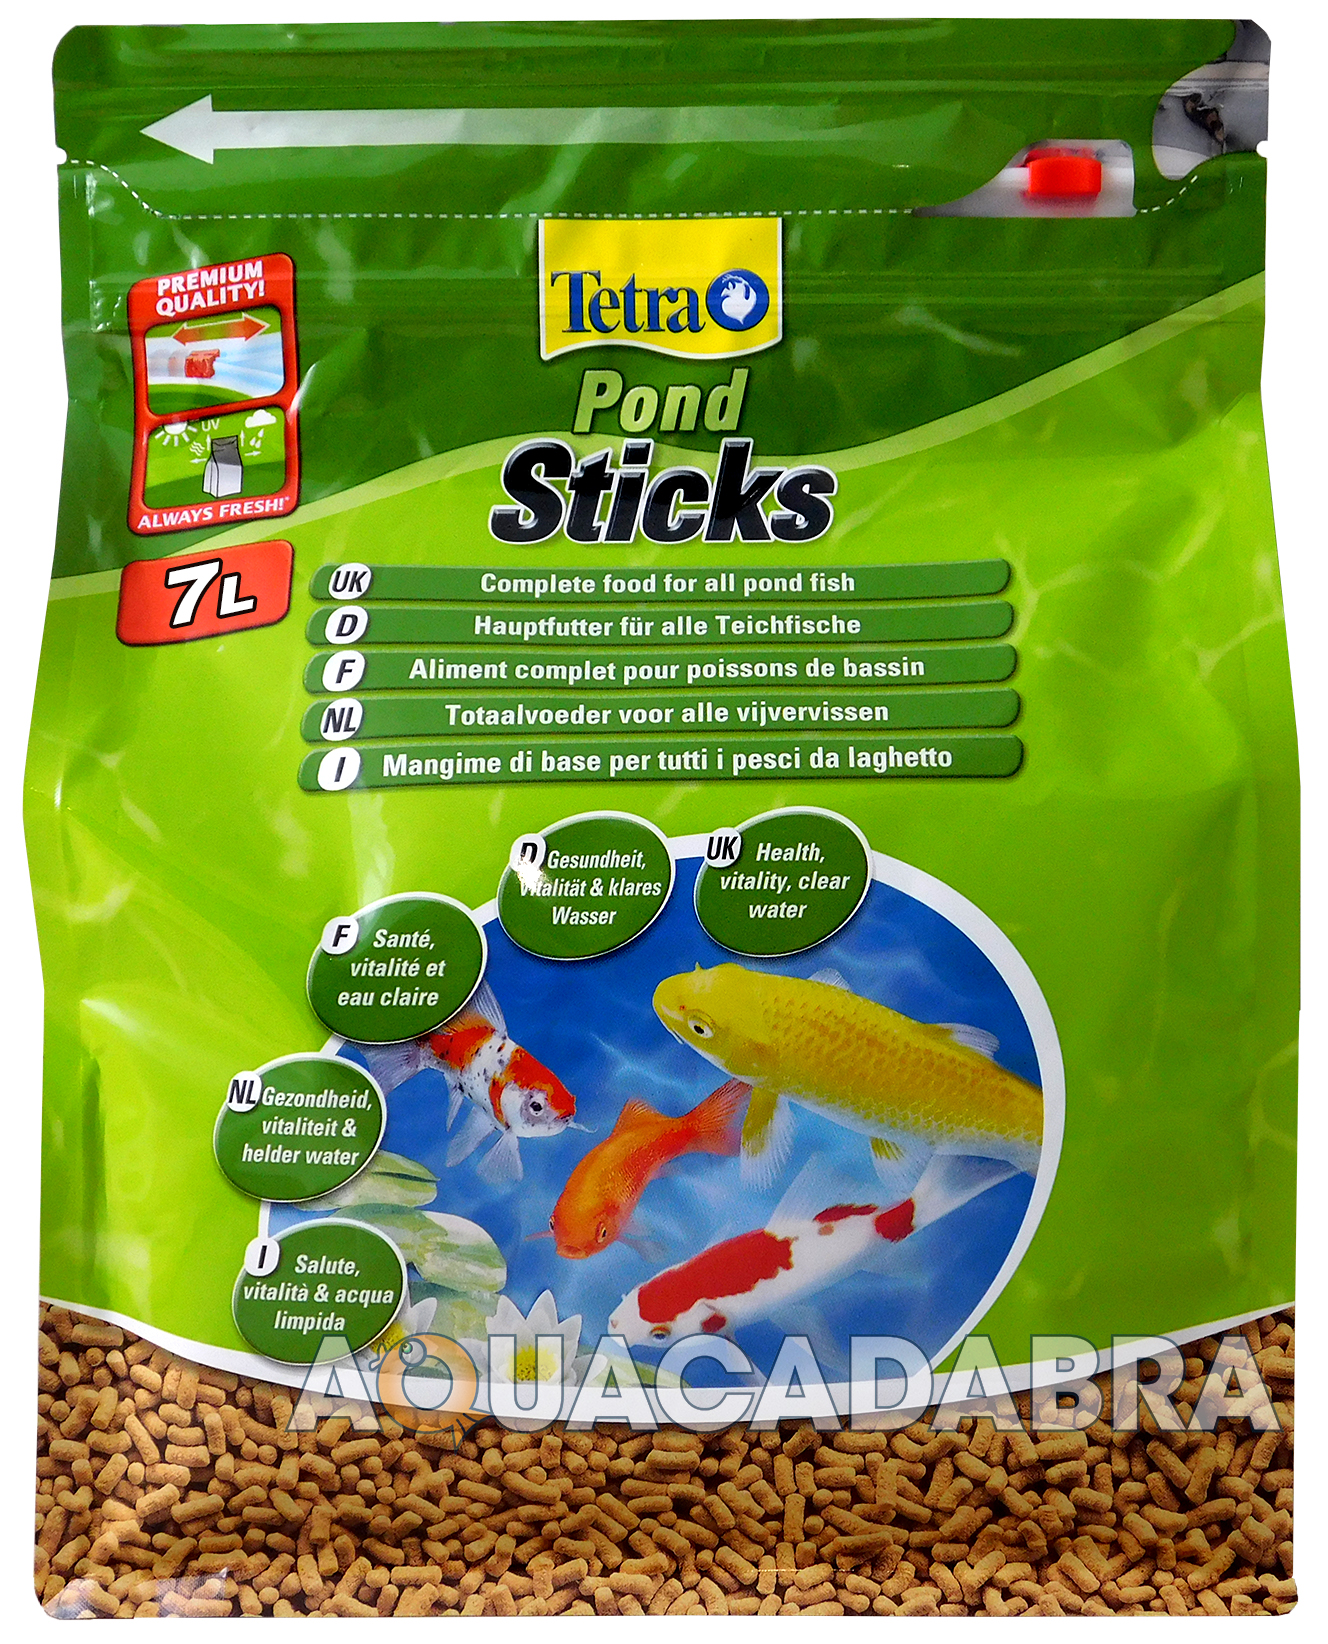 Tetrapond tetra pond floating food sticks 780g 7l fish for Koi pond sticks